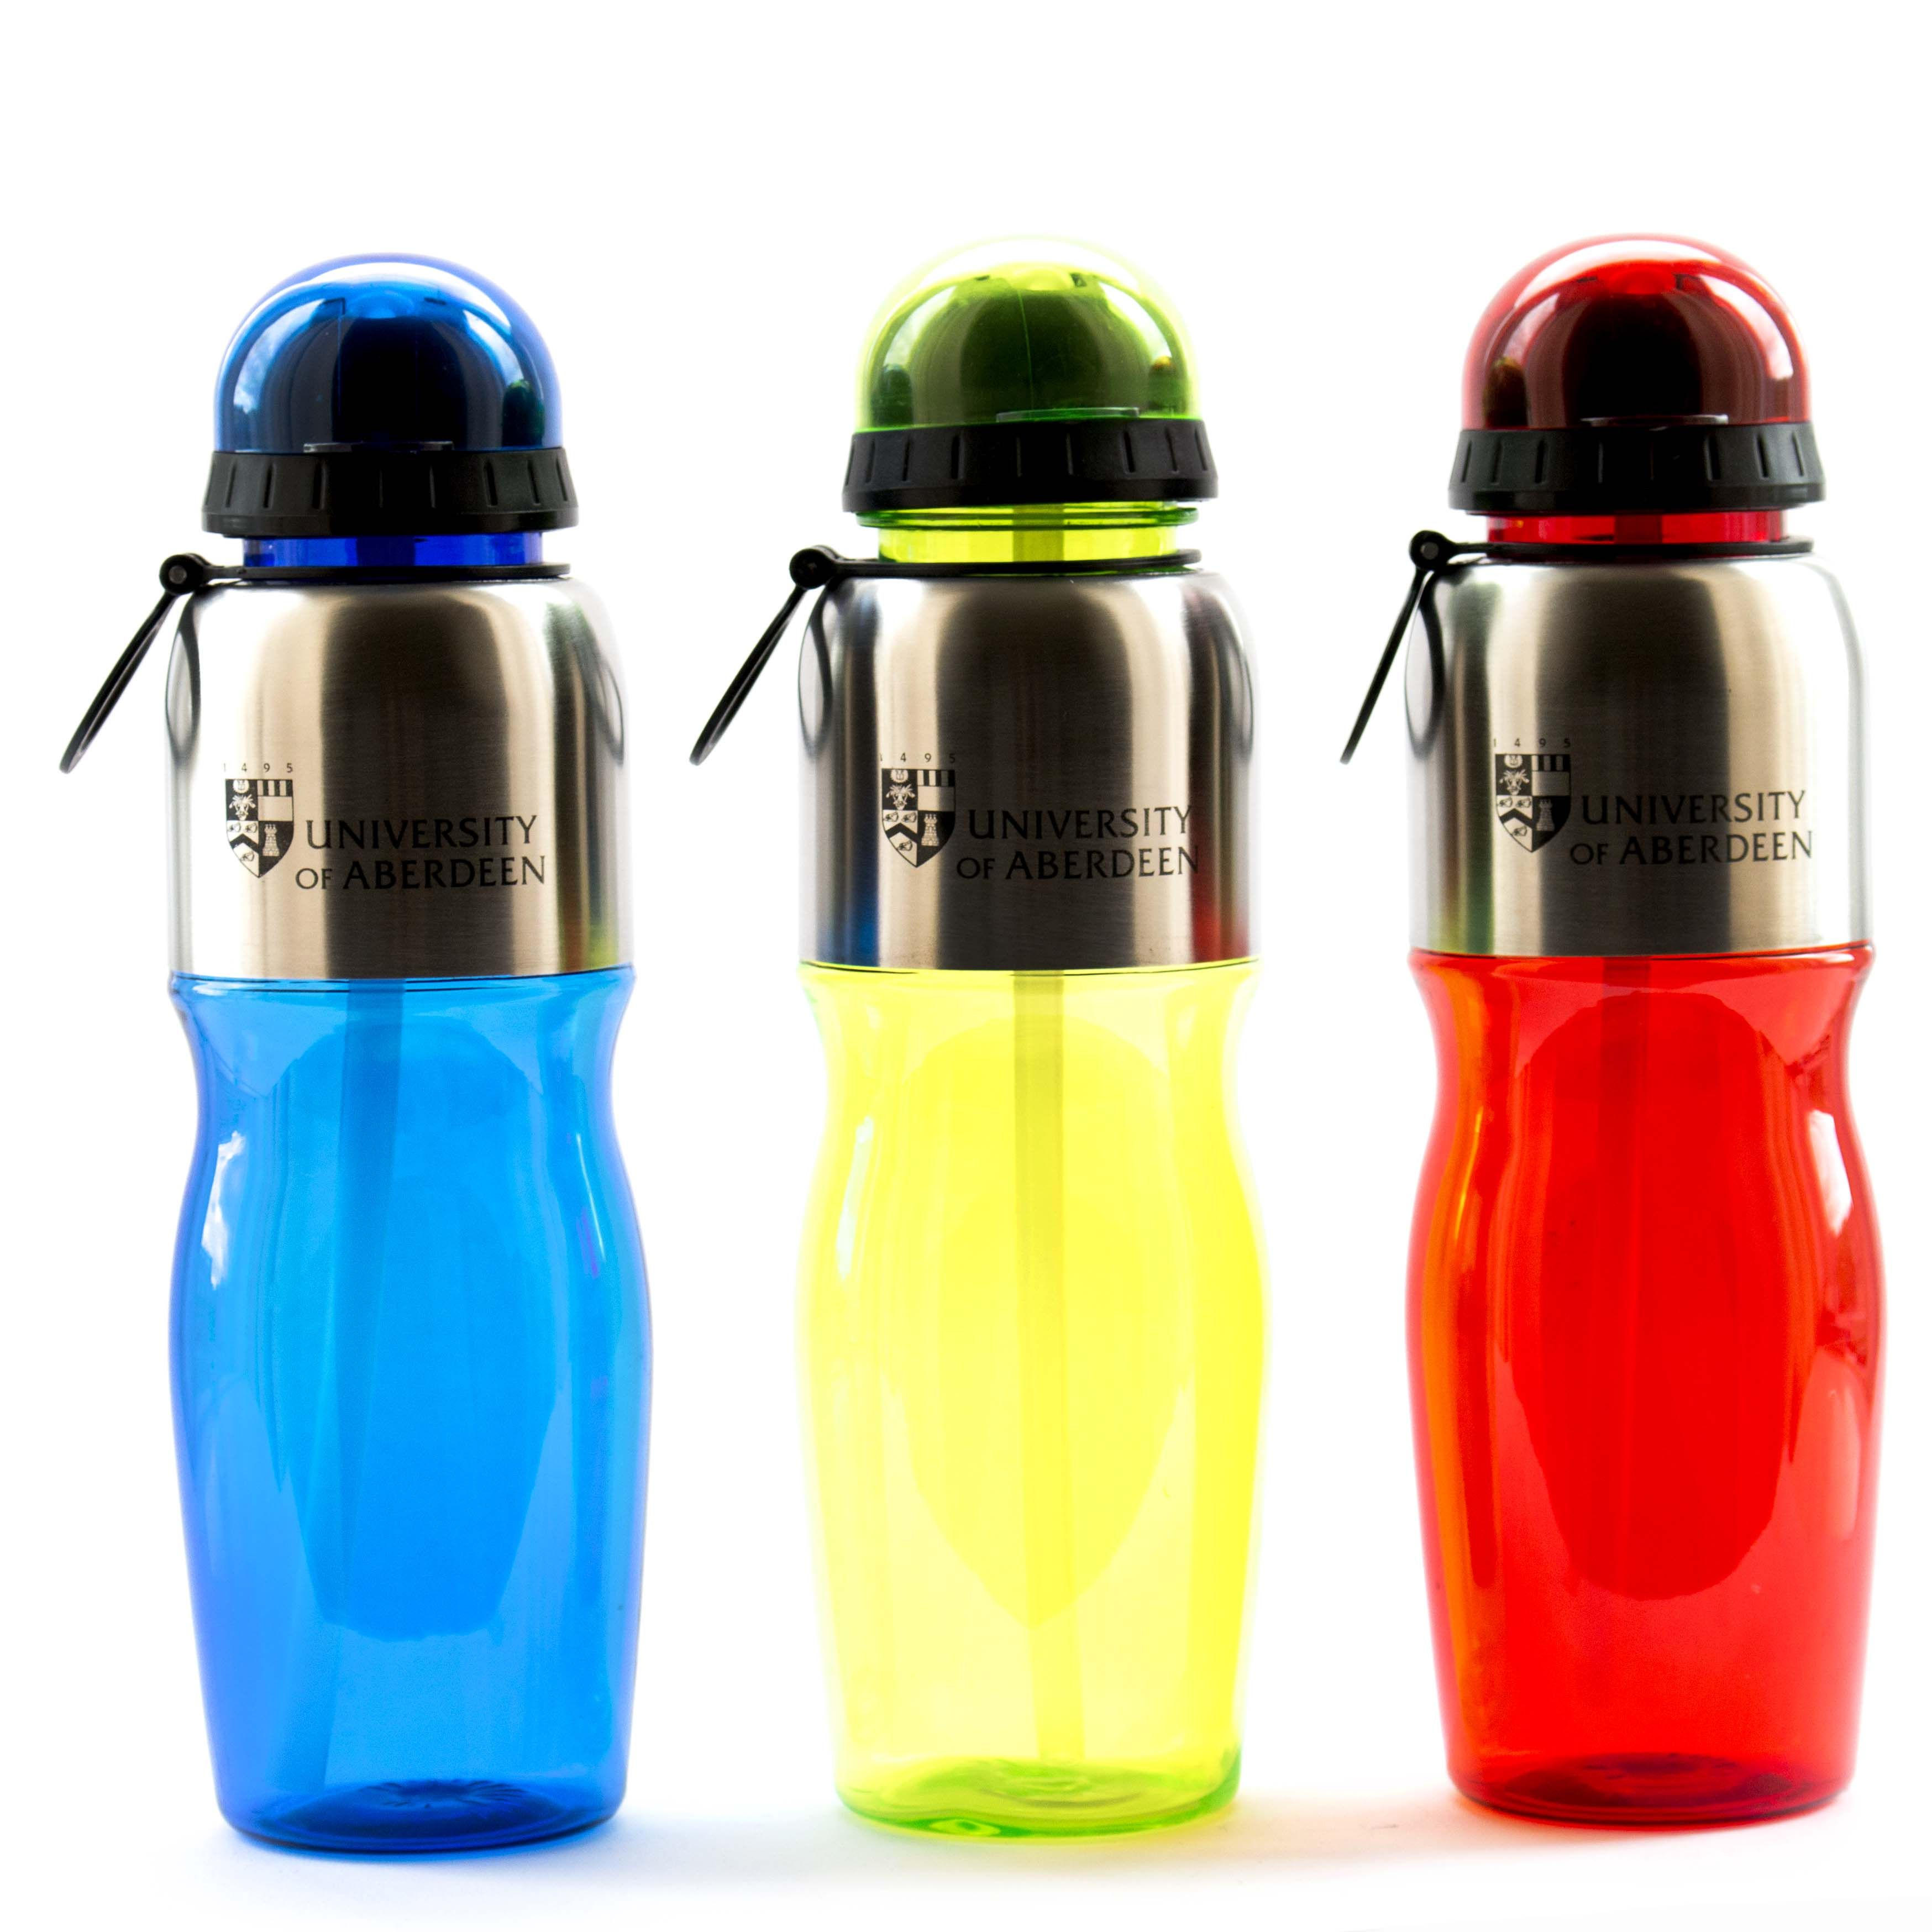 Personalised sports bottles supplied to University of